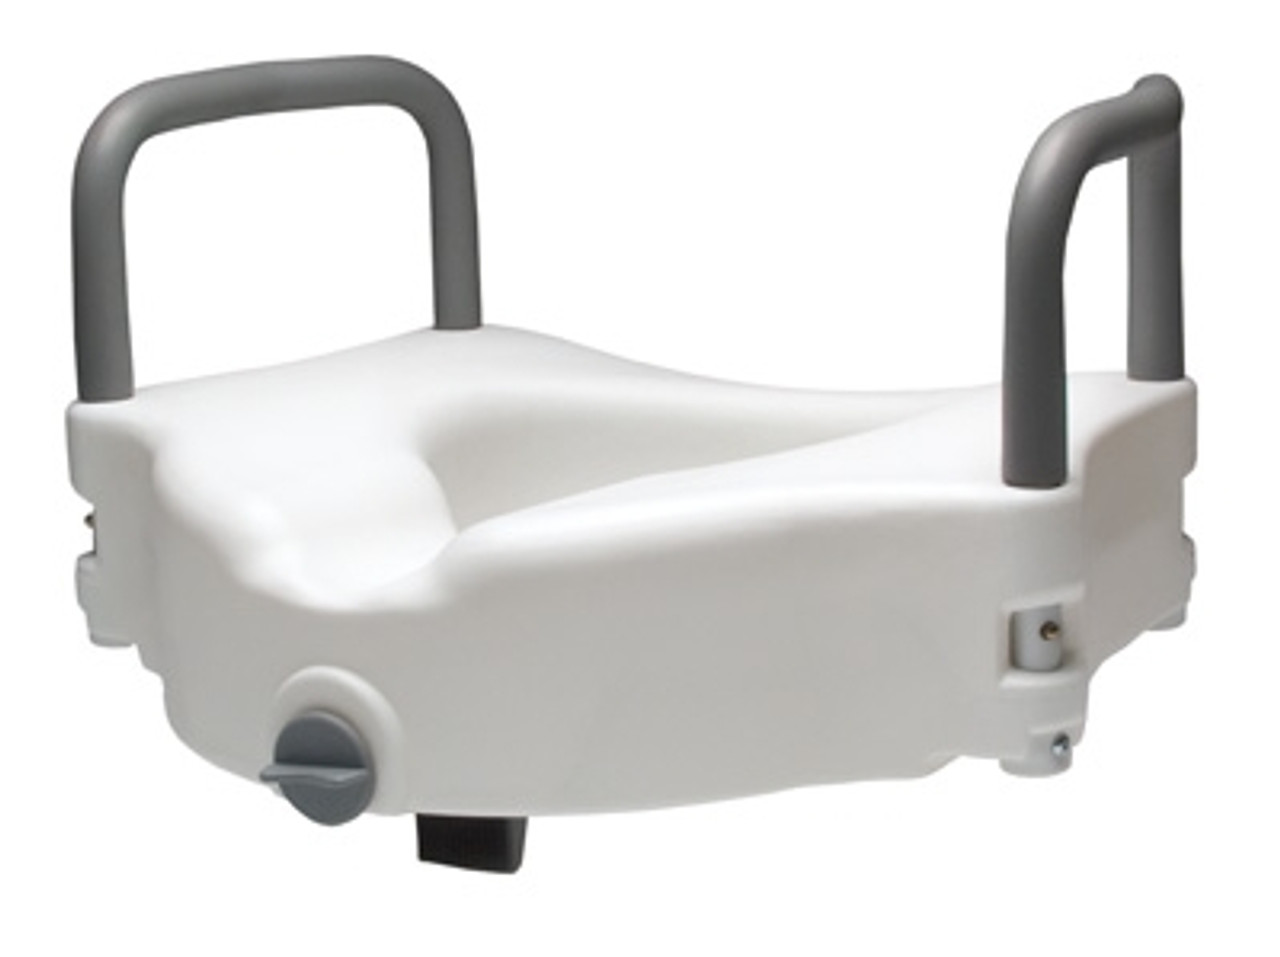 Toilet Seat with Arms Raised